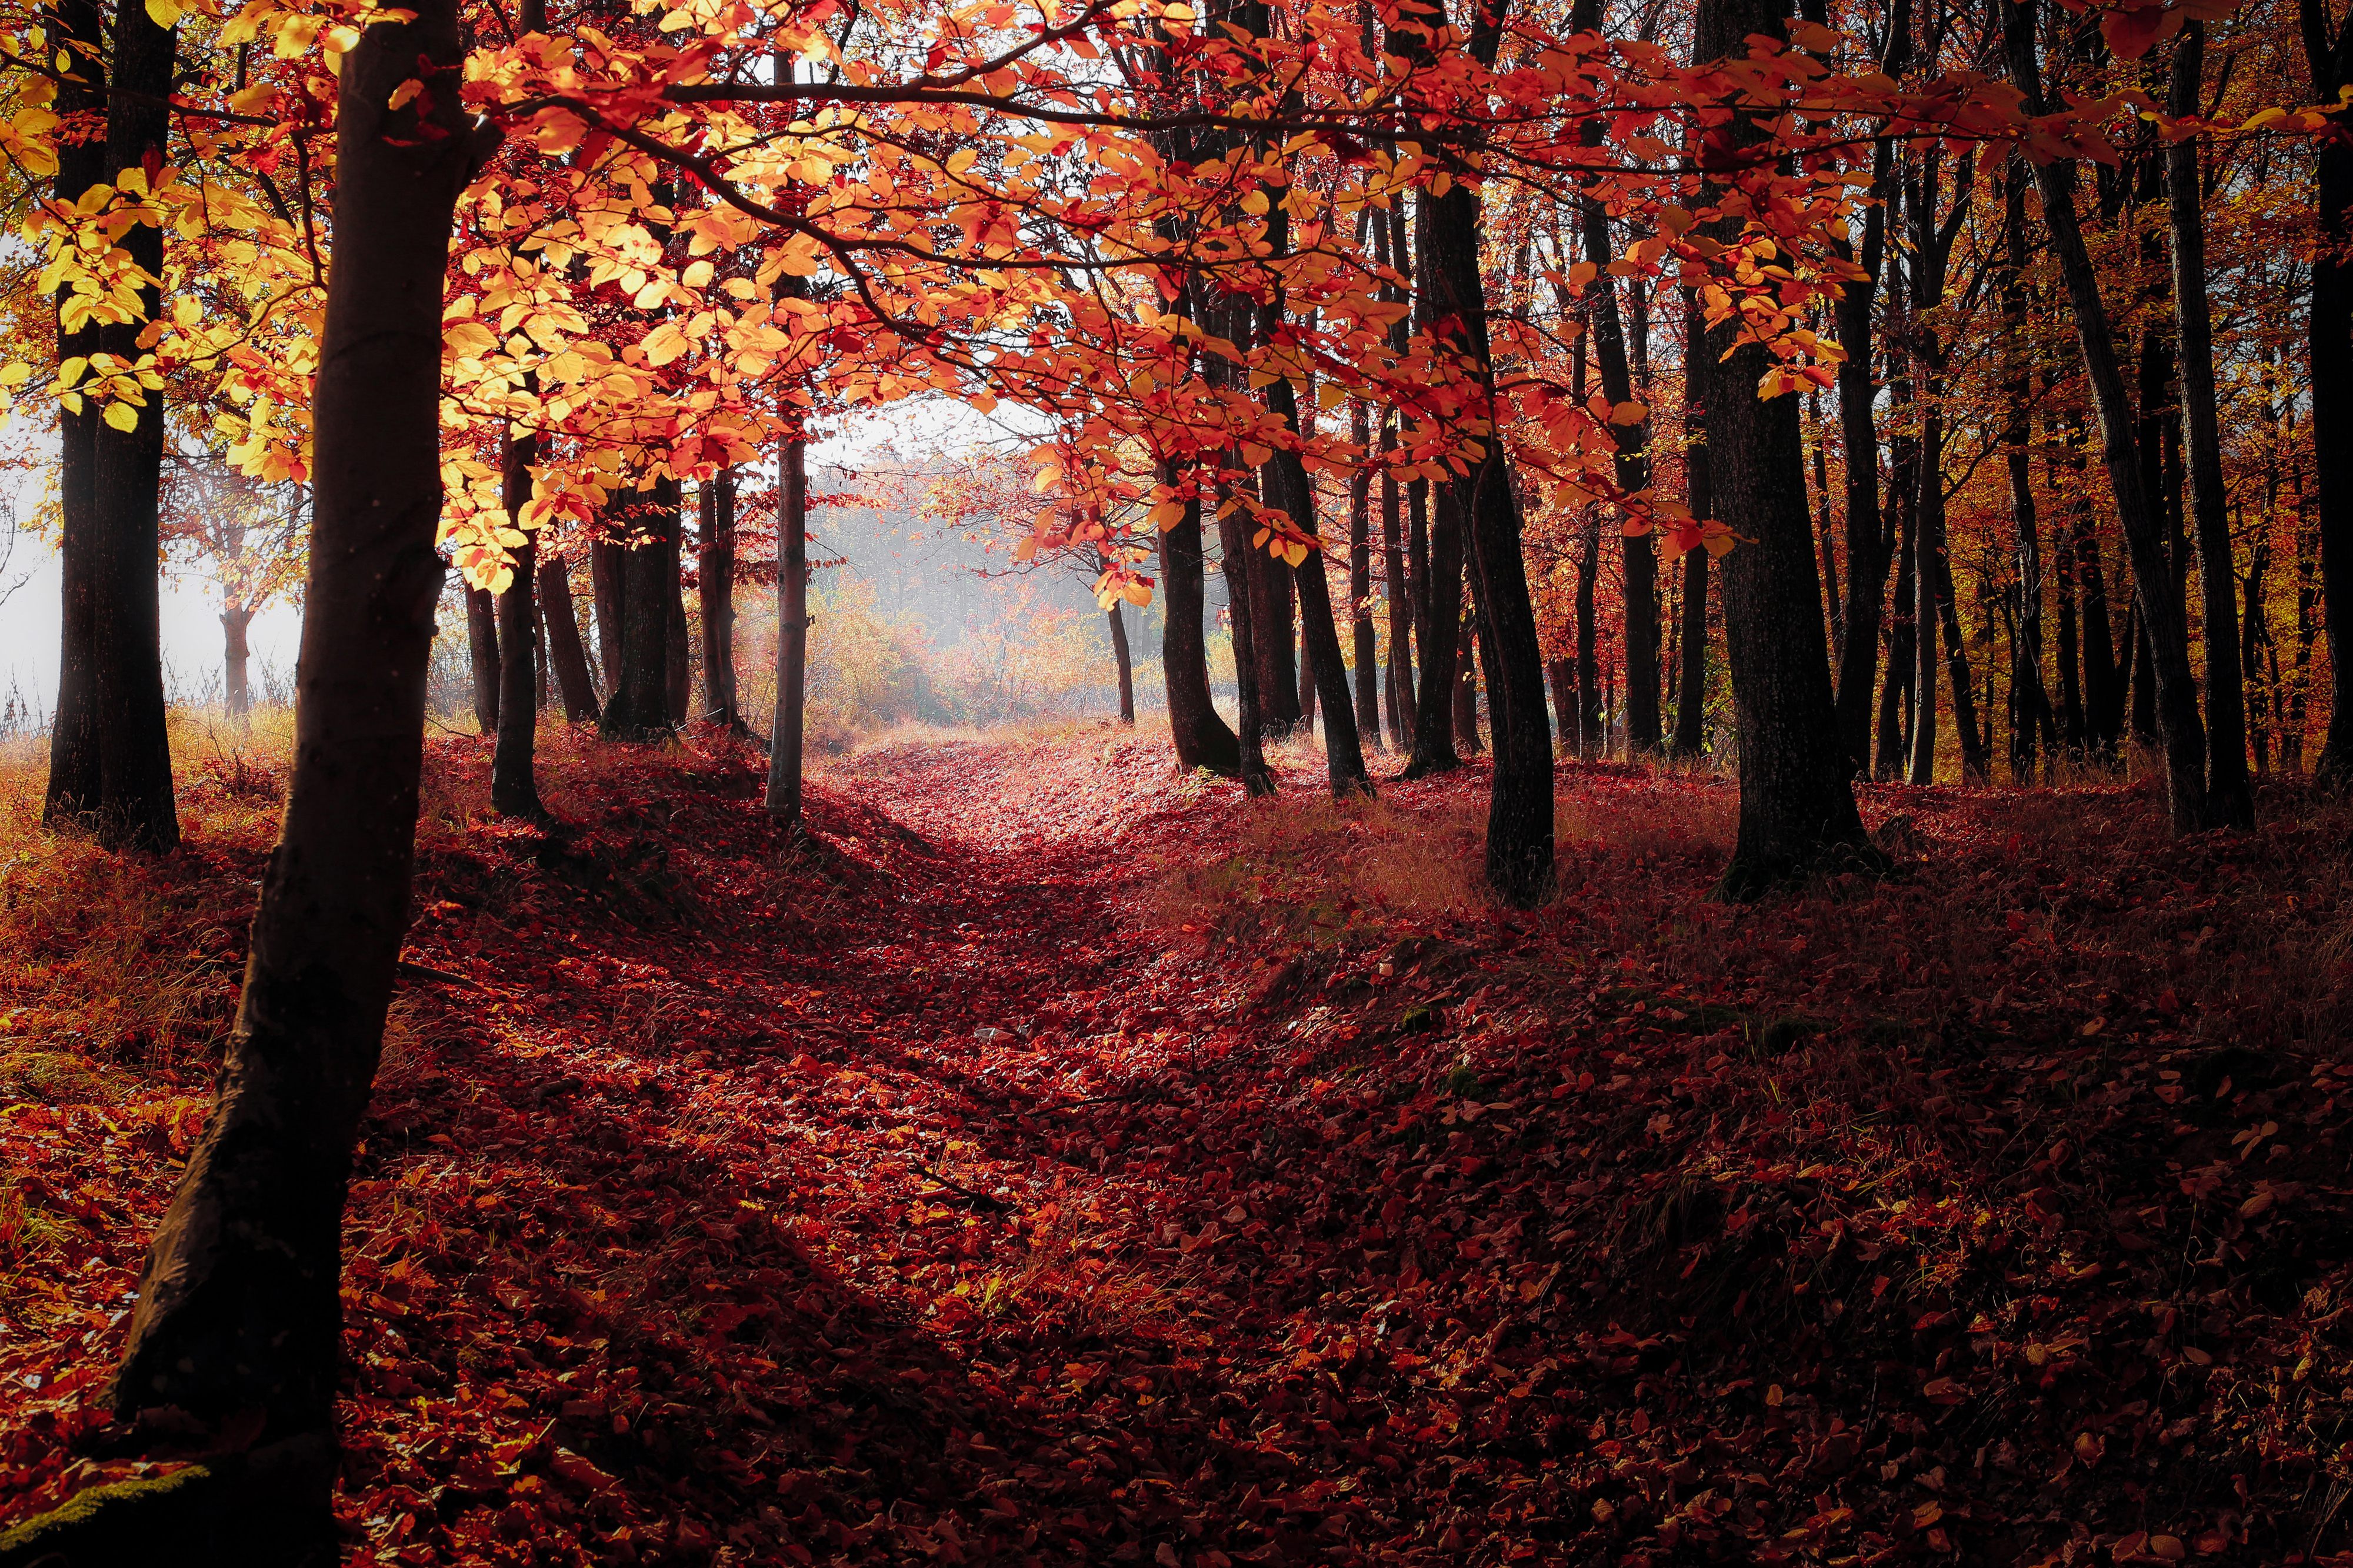 Autumn,backit,dawn,forest,natural